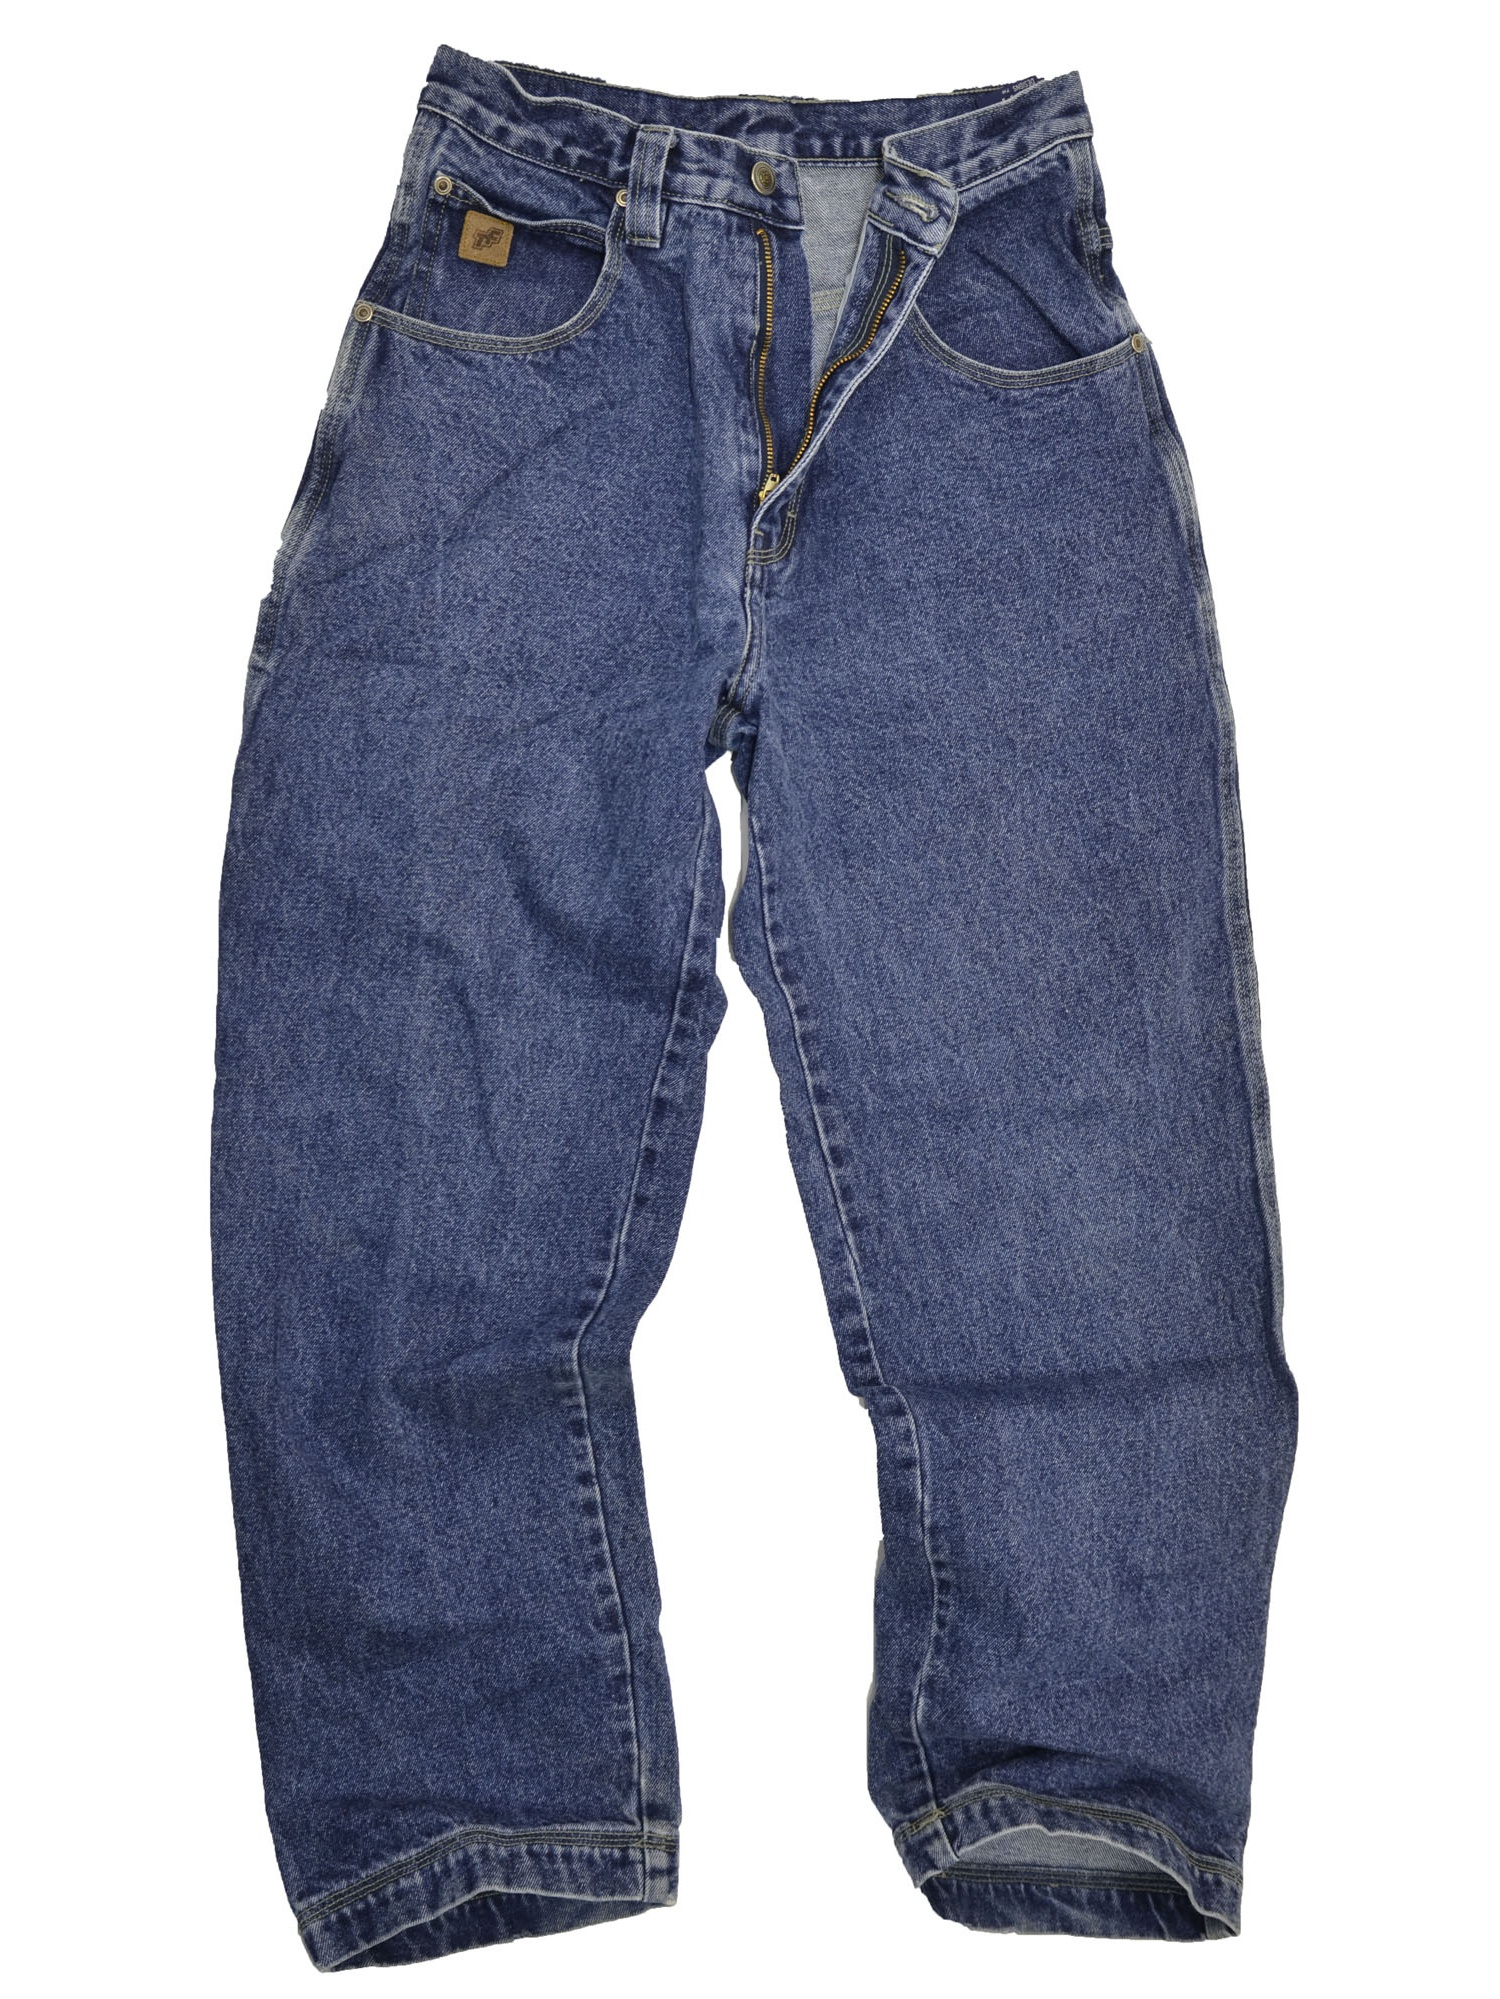 StoneTouch Men's Relaxed Jeans N2265-